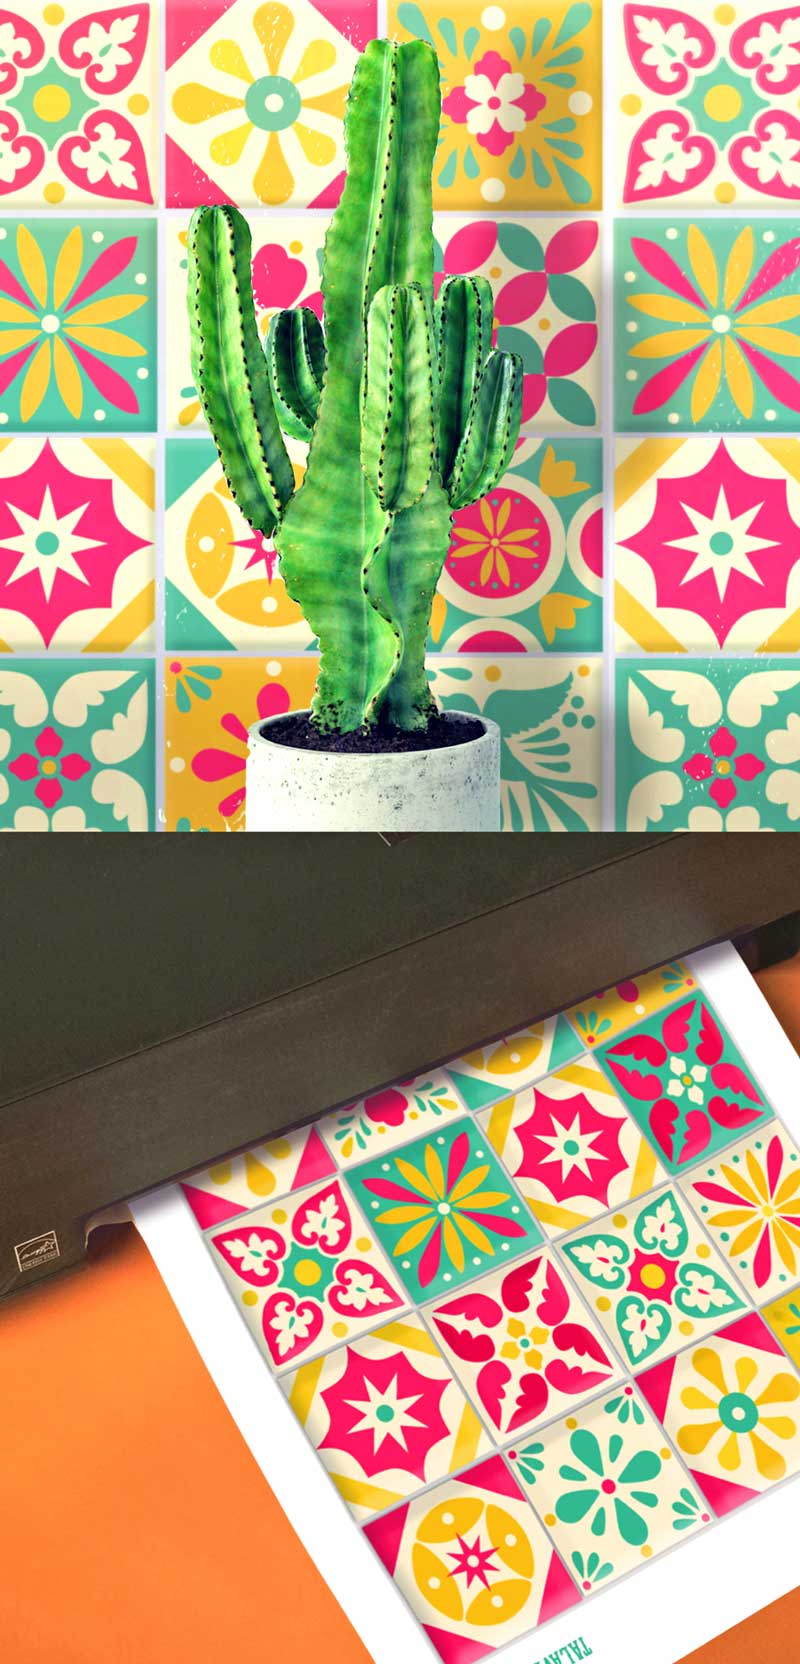 Printable DIY talavera tile designs and patterns-cactus